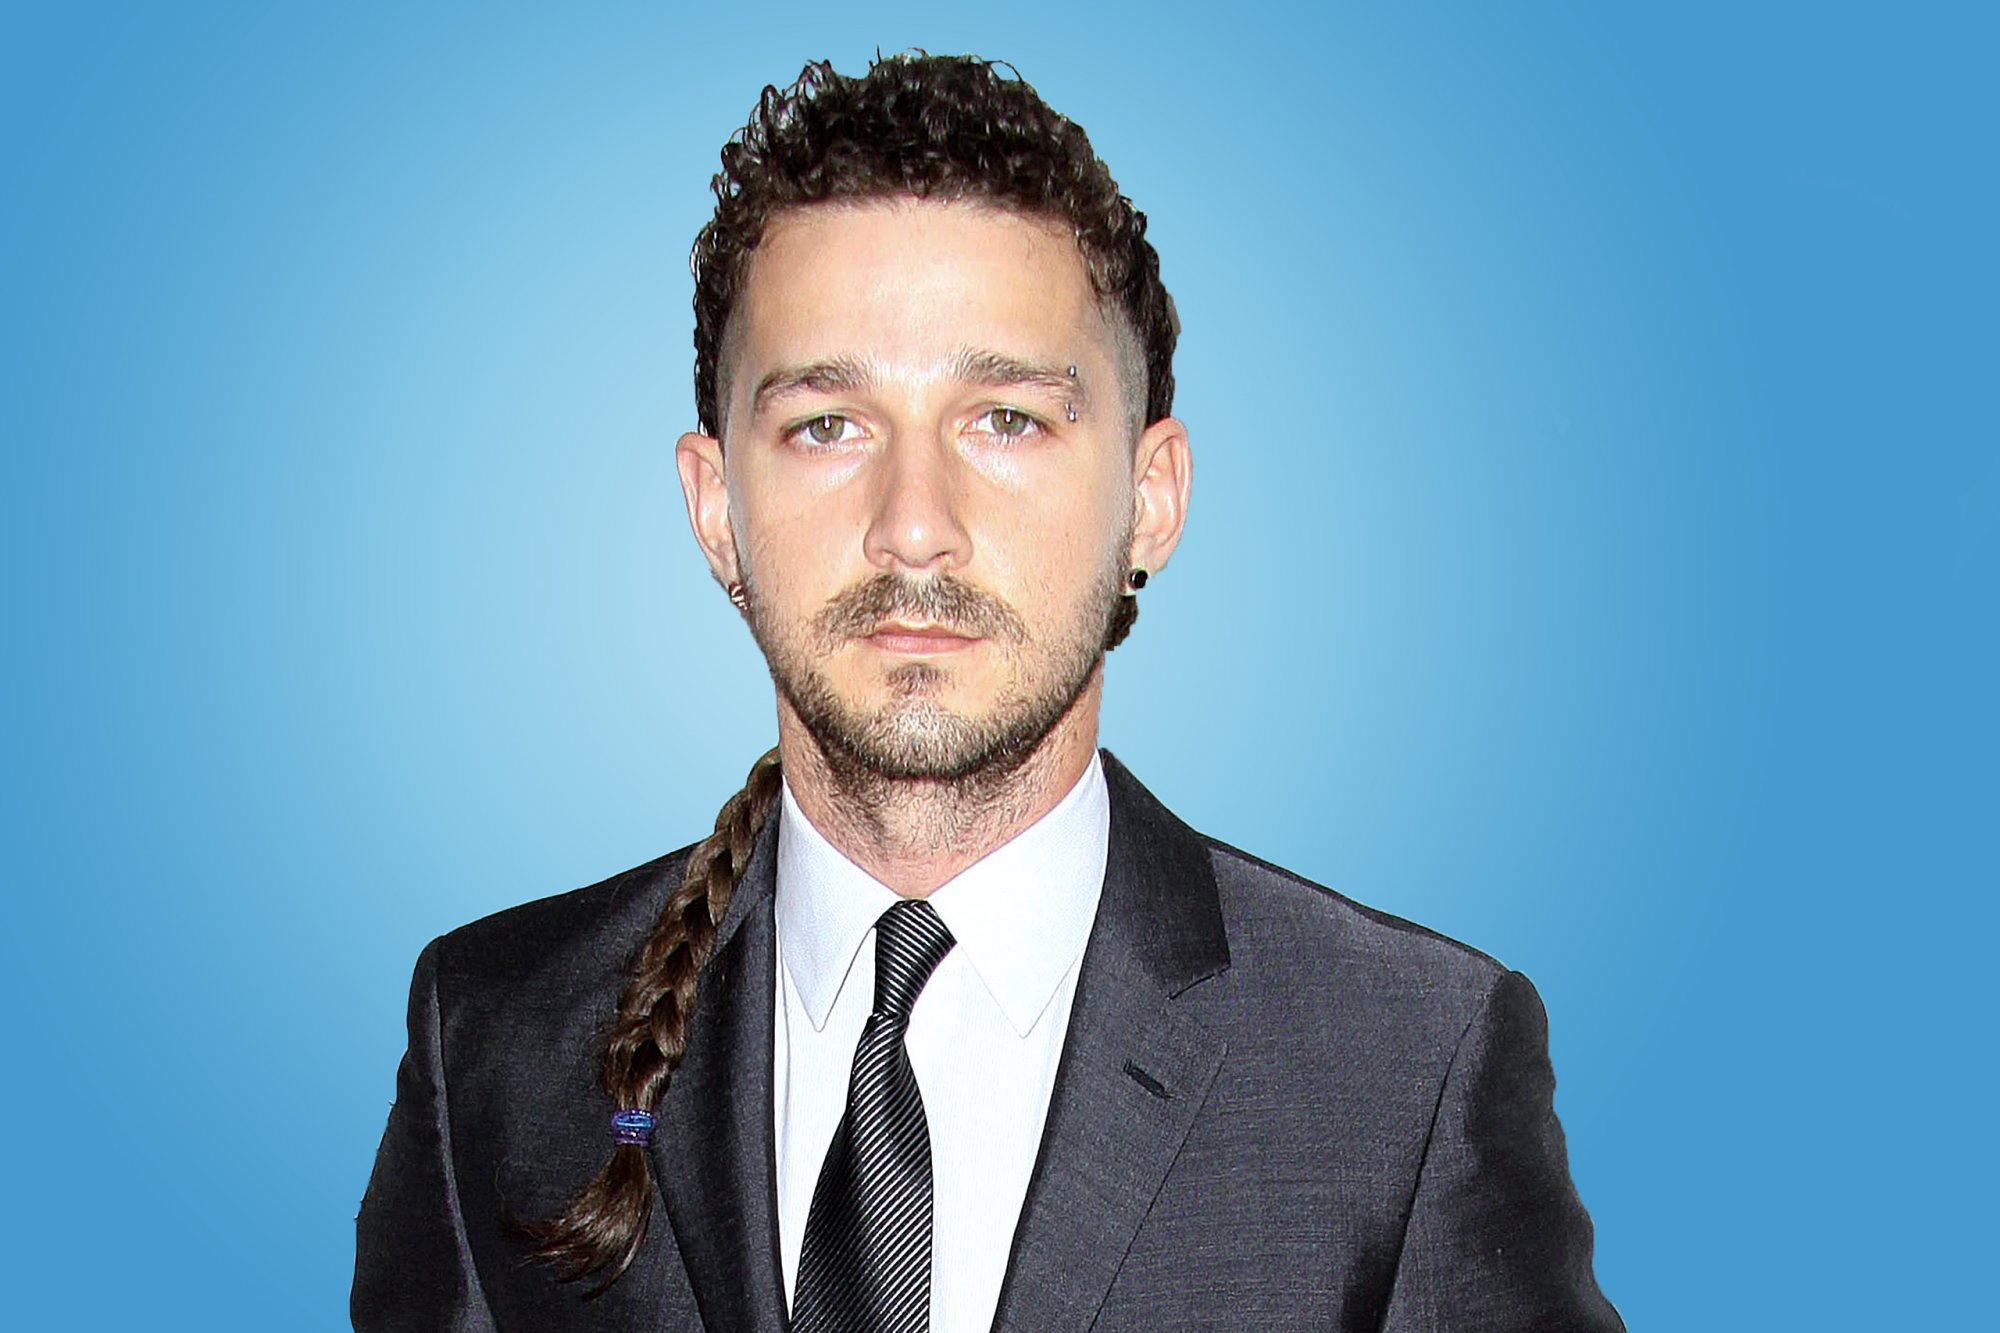 shia labeouf rob cantorshia labeouf - just do it, shia labeouf magic, shia labeouf twitter, shia labeouf live, shia labeouf stream, shia labeouf 2017, shia labeouf magic gif, shia labeouf trump, shia labeouf 2016, shia labeouf flag, shia labeouf tattoo, shia labeouf just do it скачать, shia labeouf style, shia labeouf фильмы, shia labeouf height, shia labeouf gif, shia labeouf wife, shia labeouf sia, shia labeouf movies, shia labeouf rob cantor